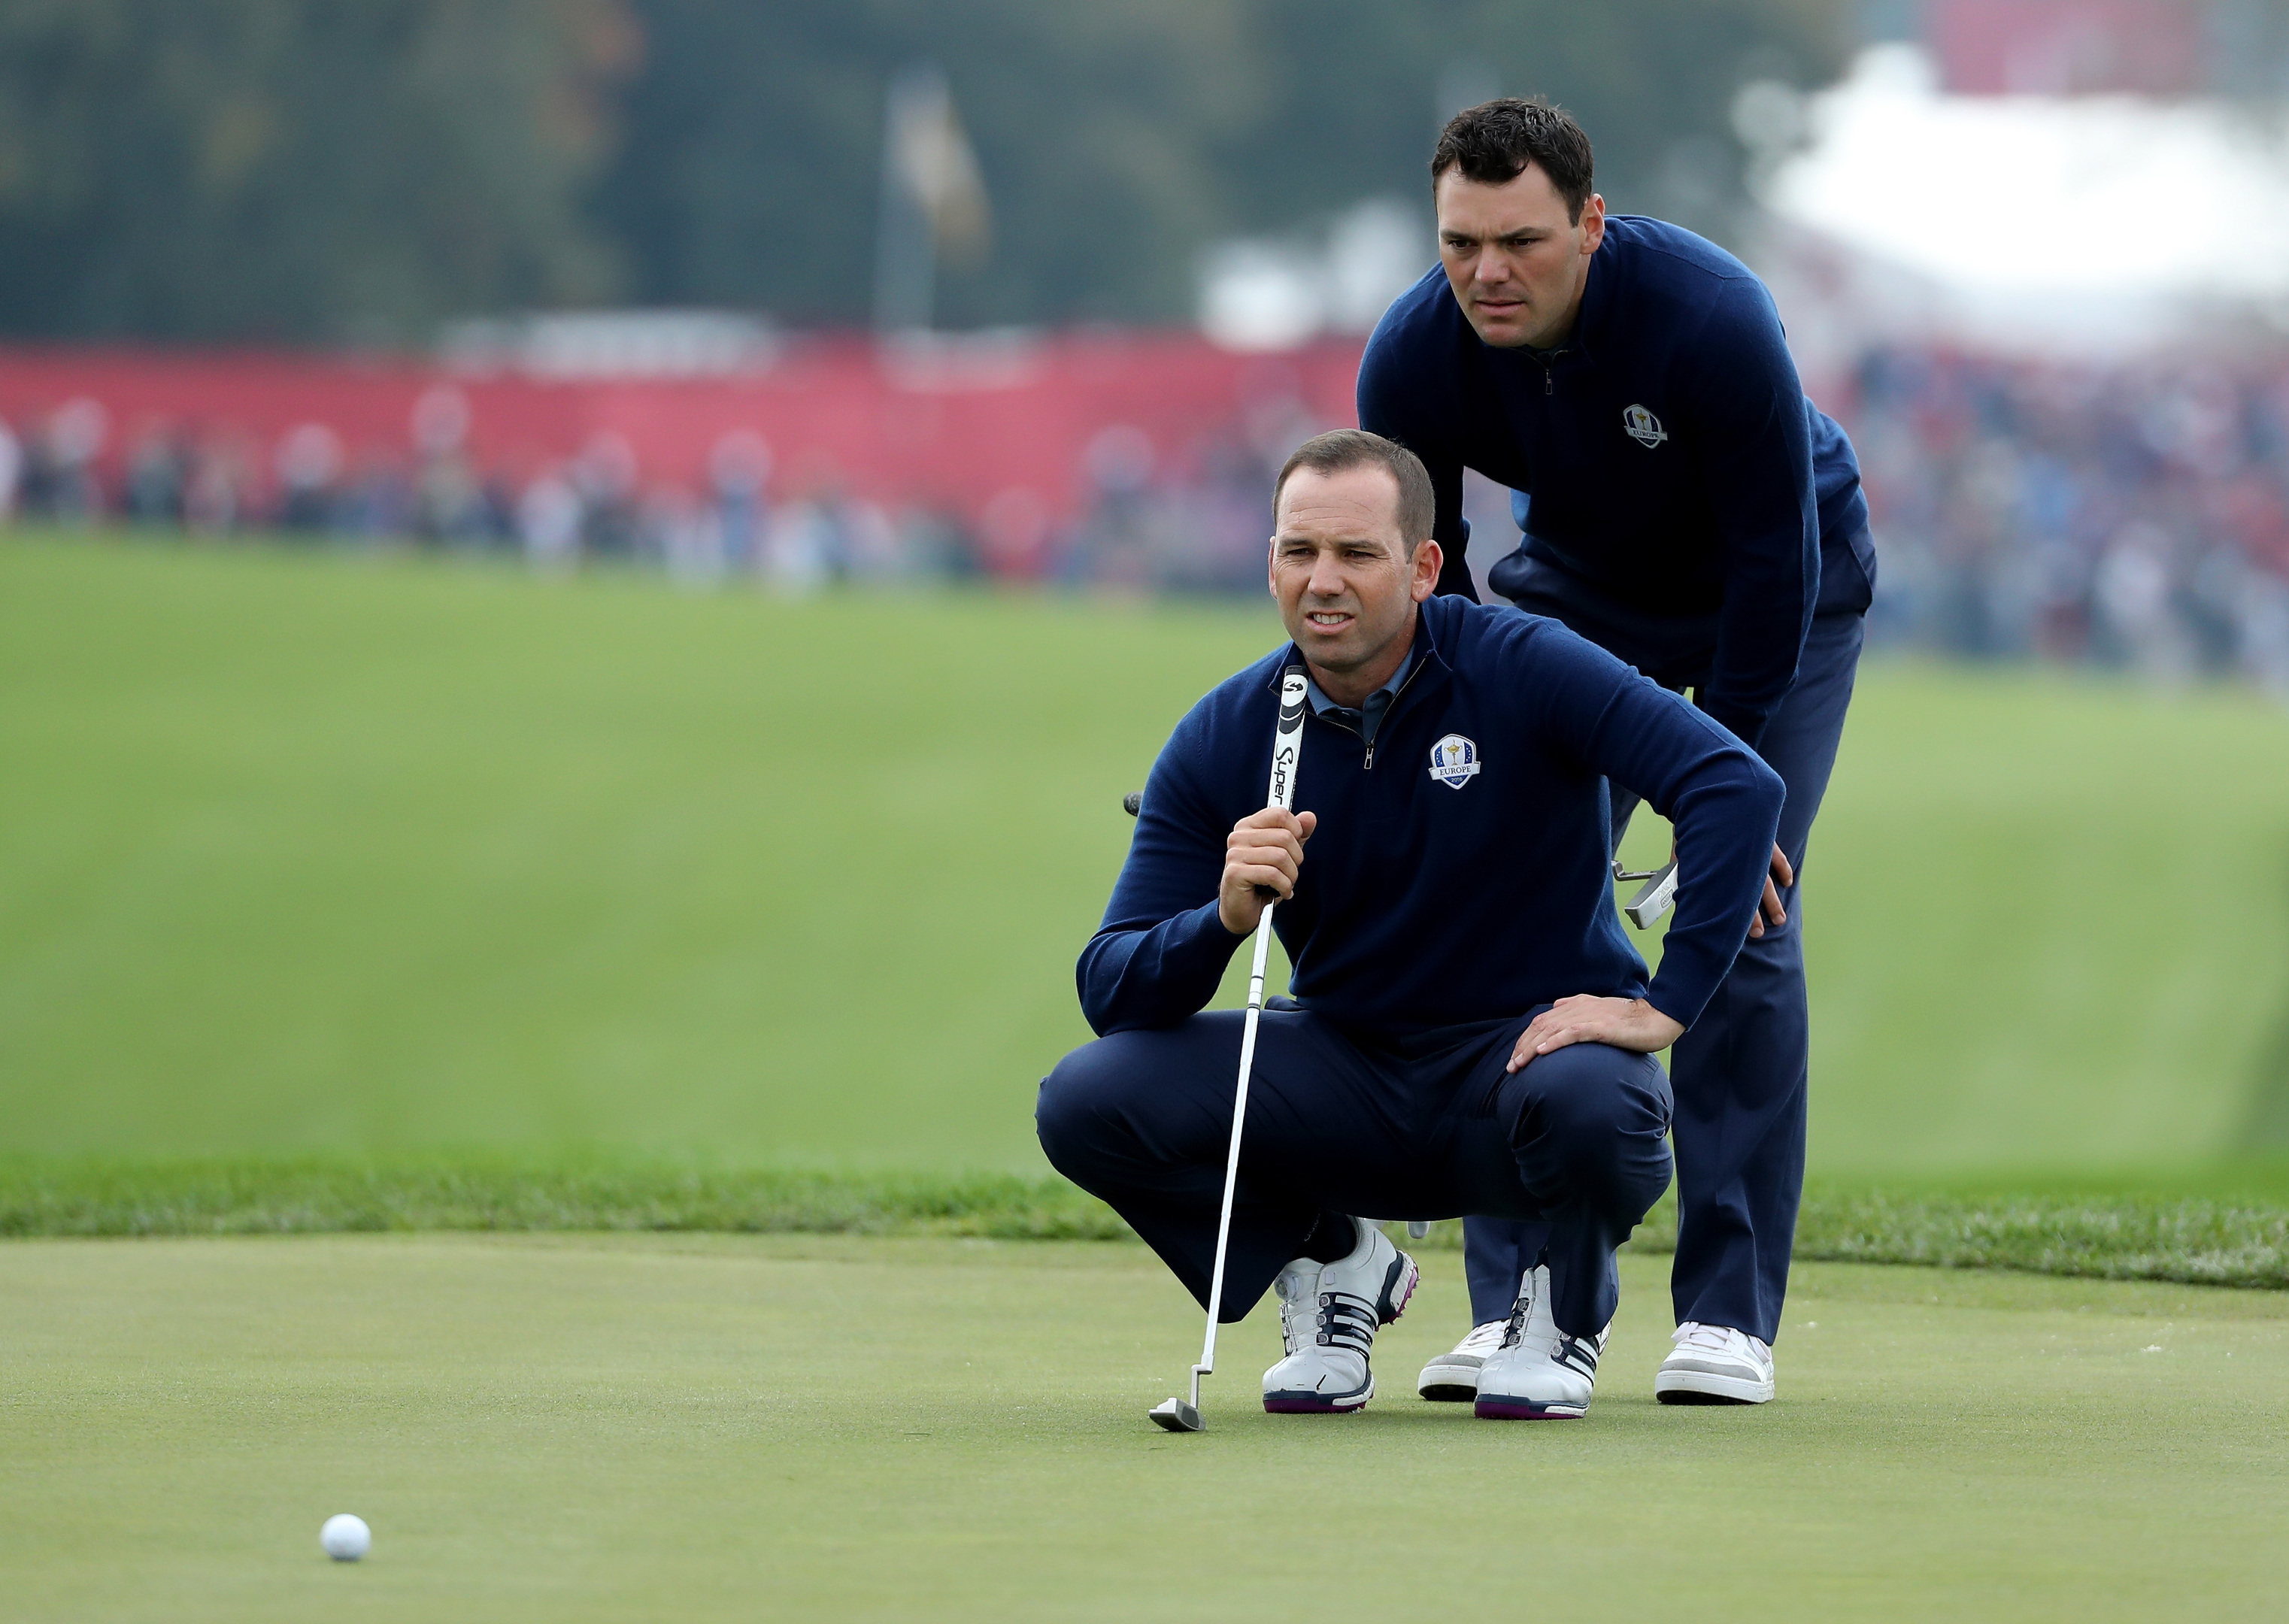 5 huge momentum swings from Ryder Cup history